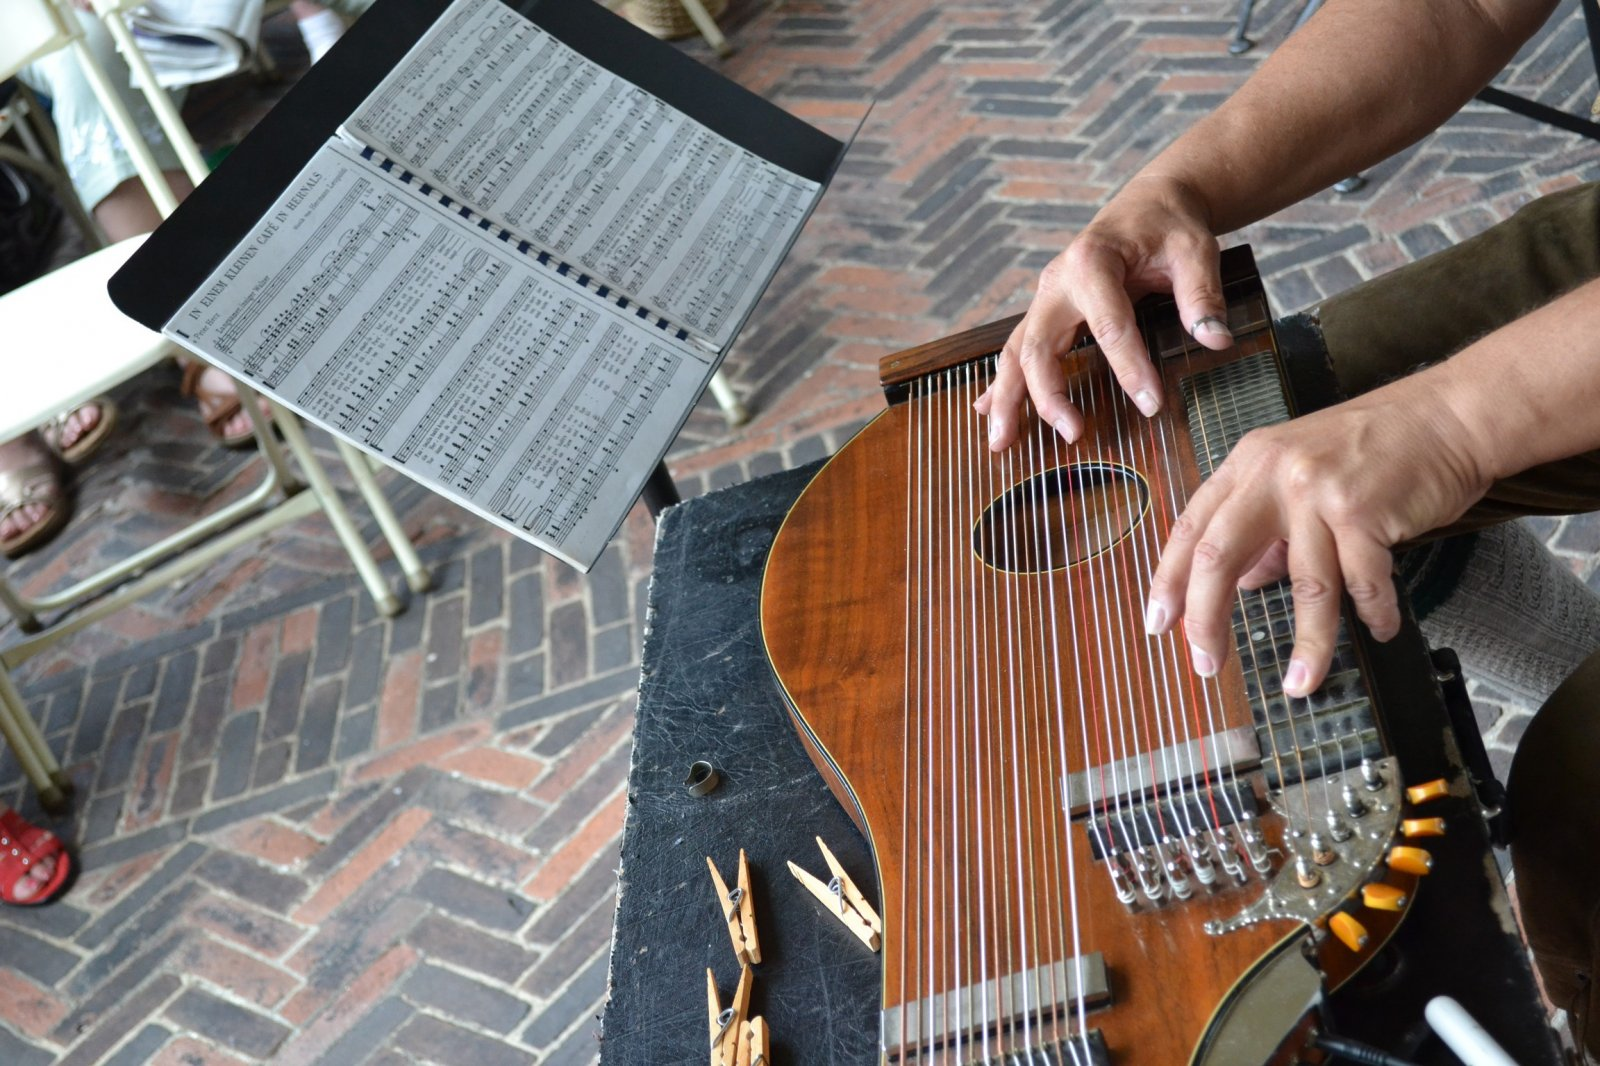 The Zither is a stringed instrument dating back to 400 BC.